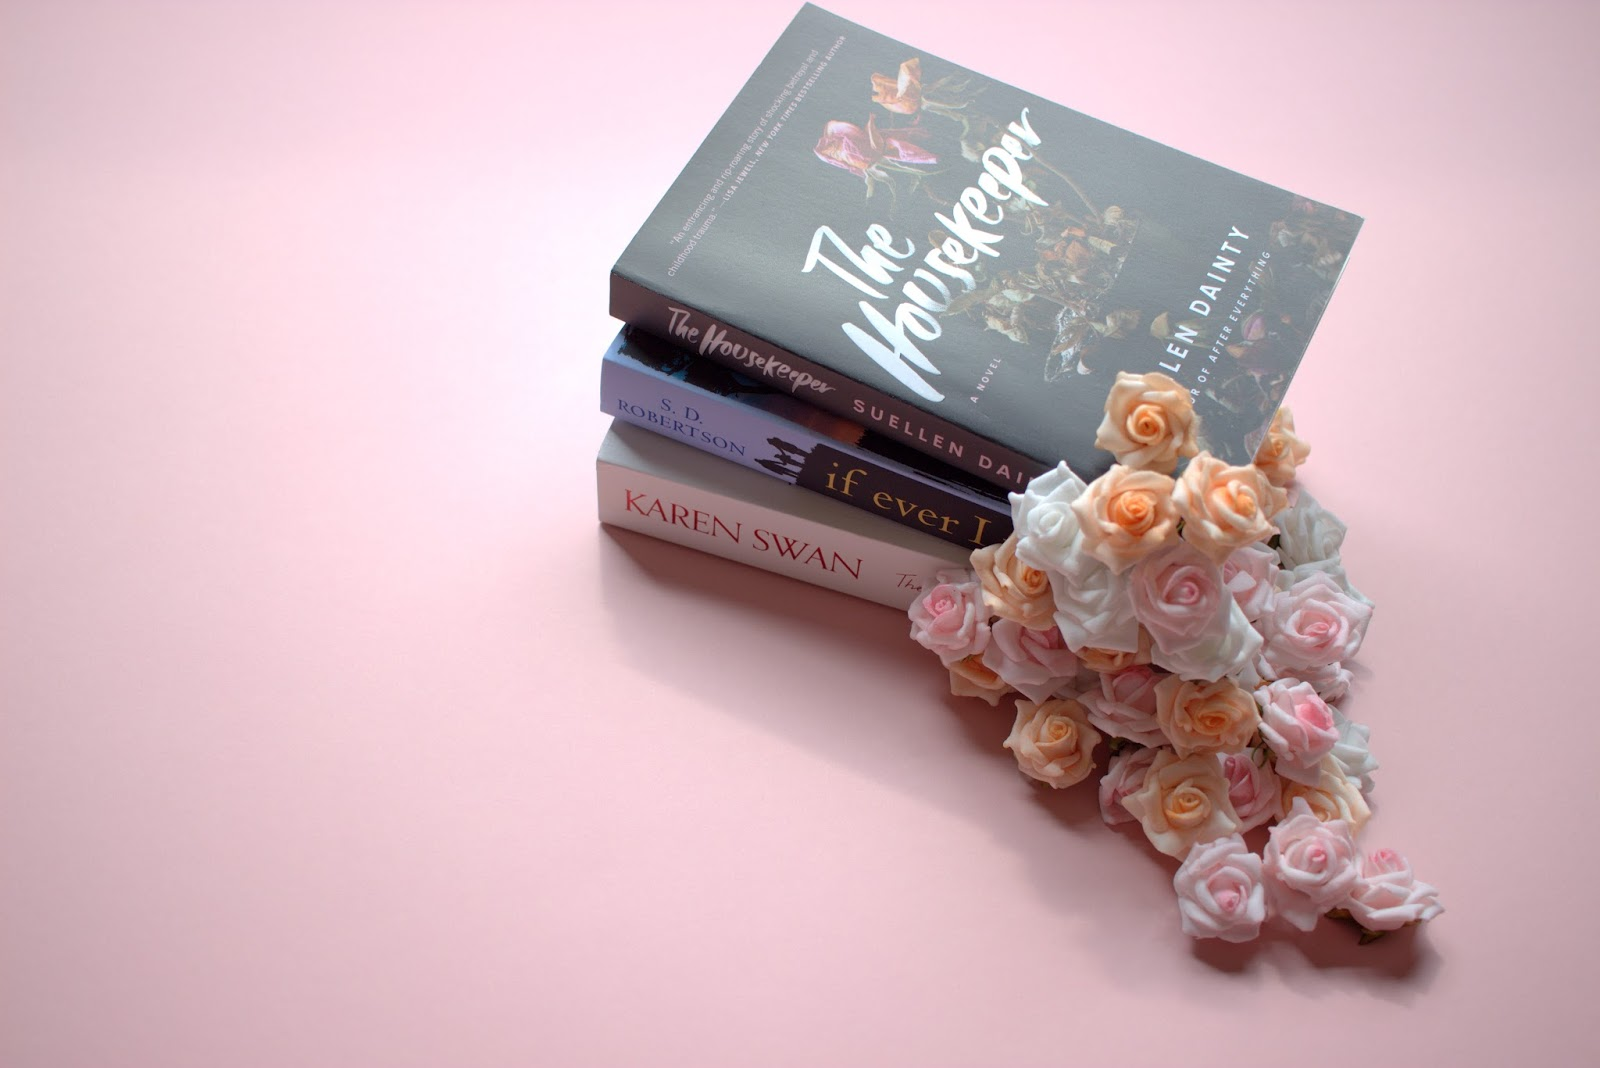 Book Review, fiction, ya, contemporary, Lost for words, the housekeeper, letters to the lost